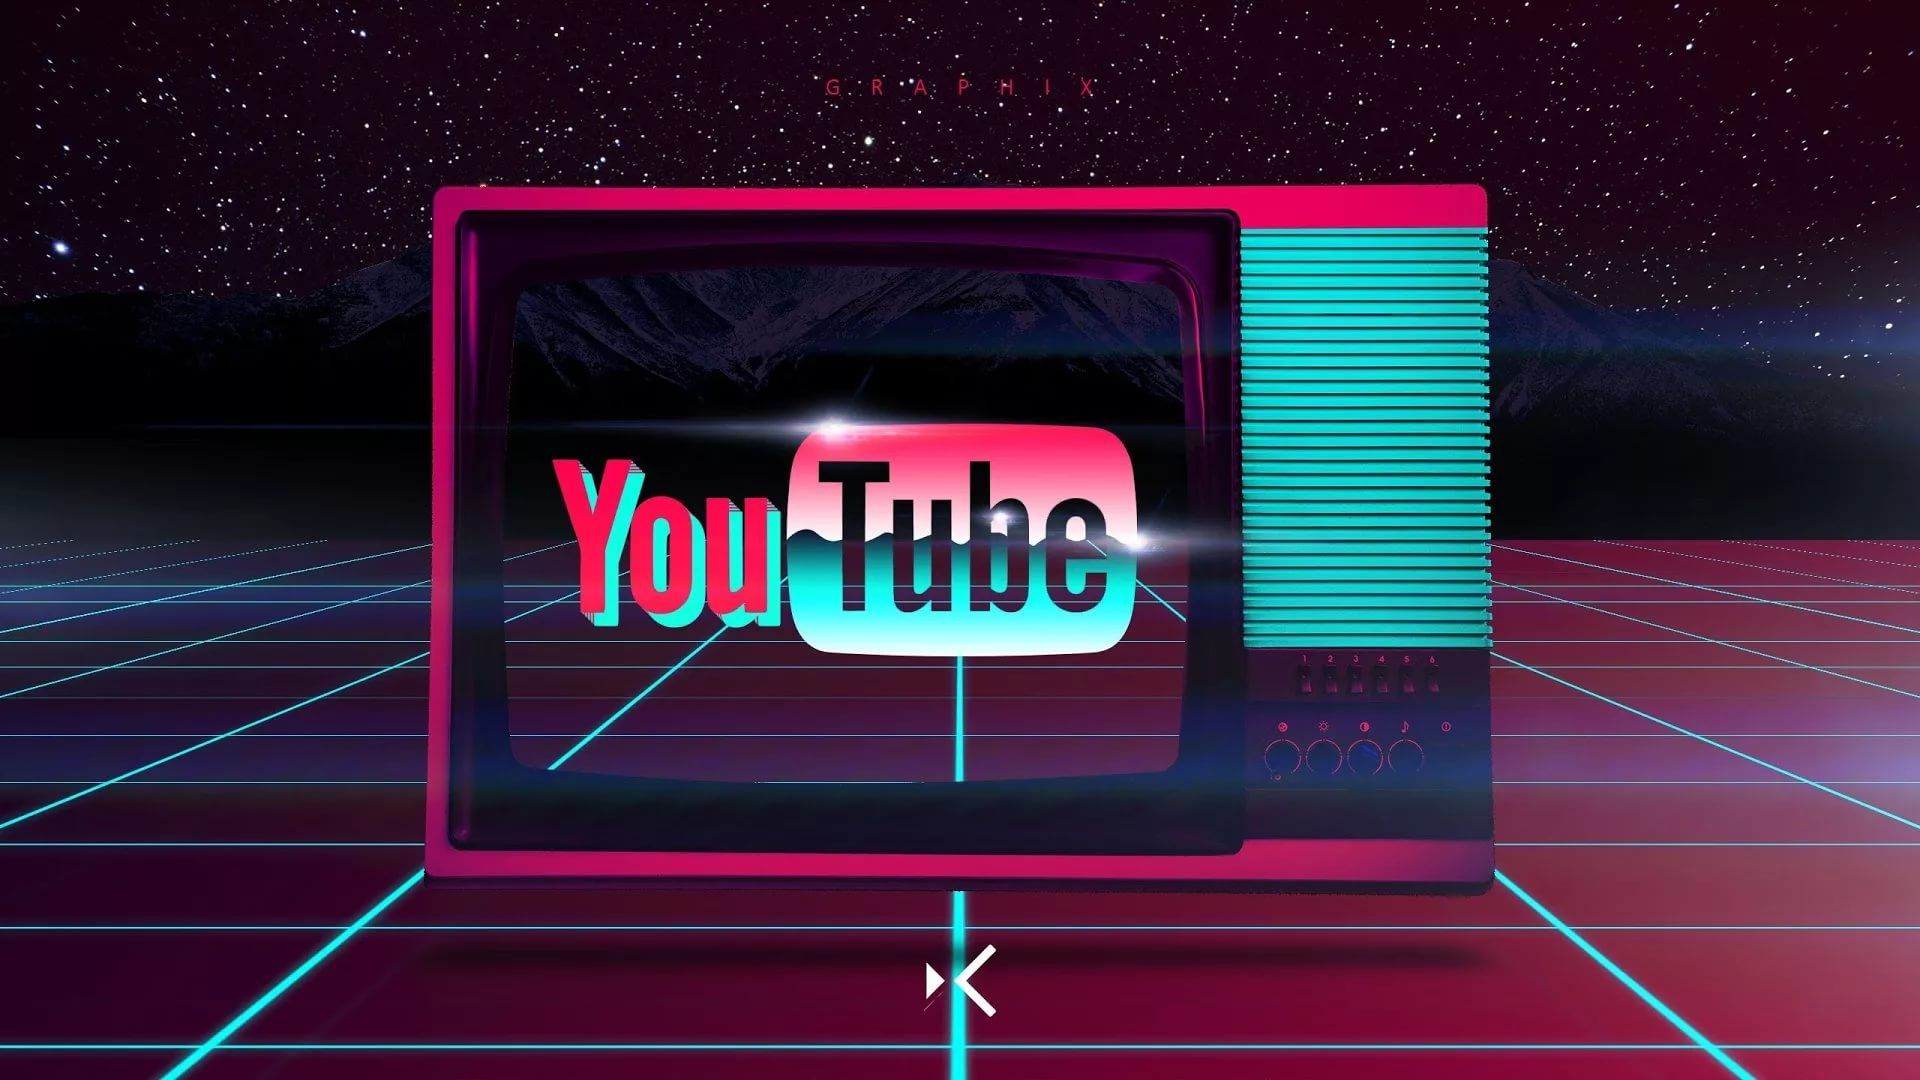 Youtube Wallpaper Picture